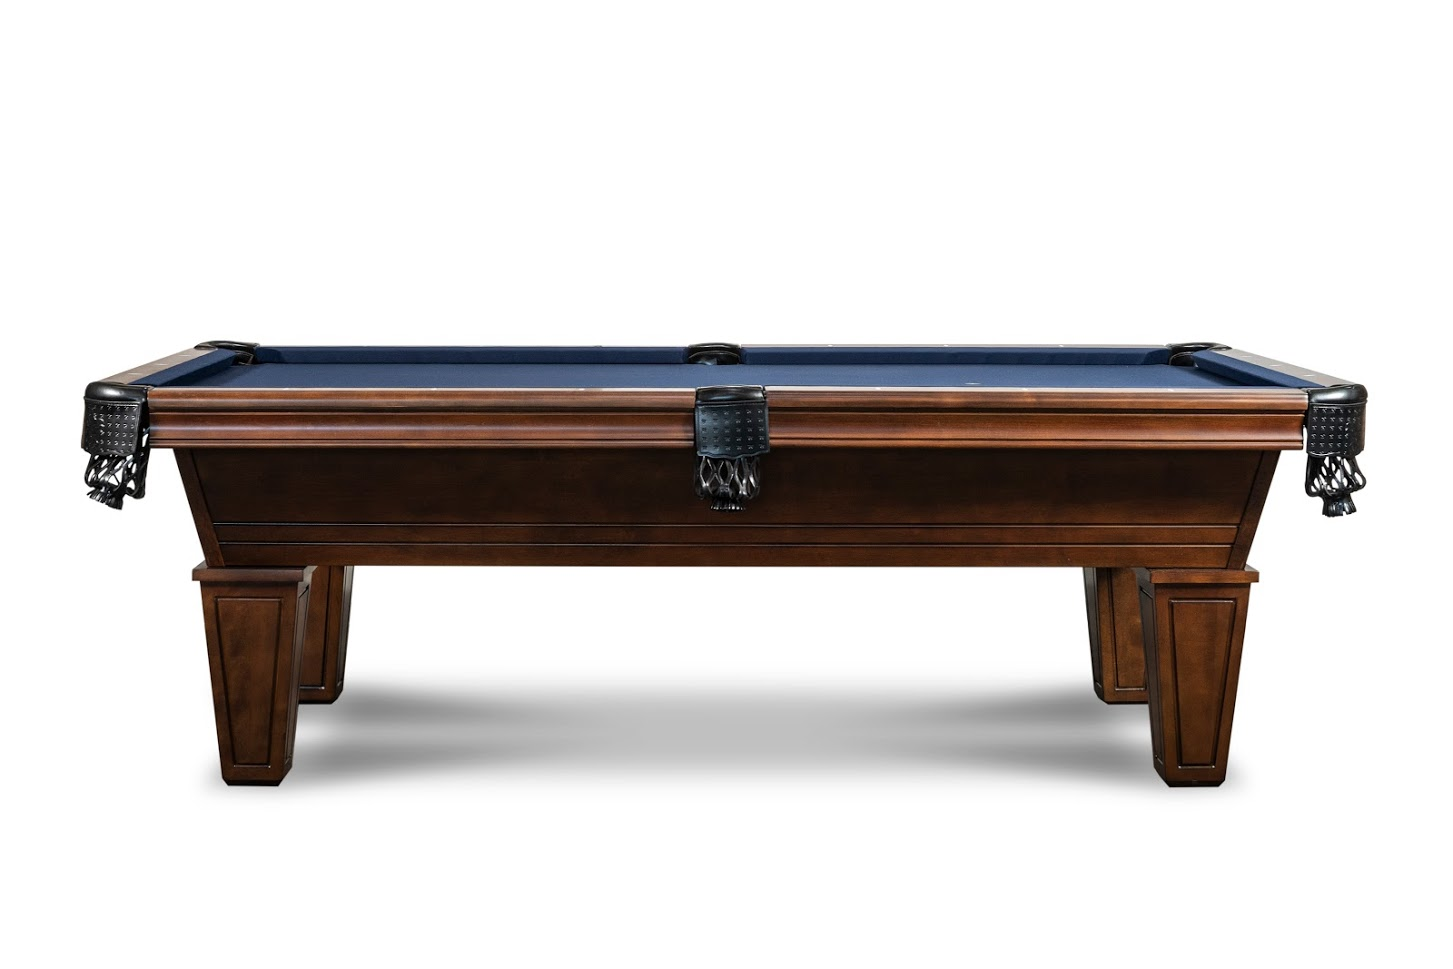 Corona Pool Table in Navajo